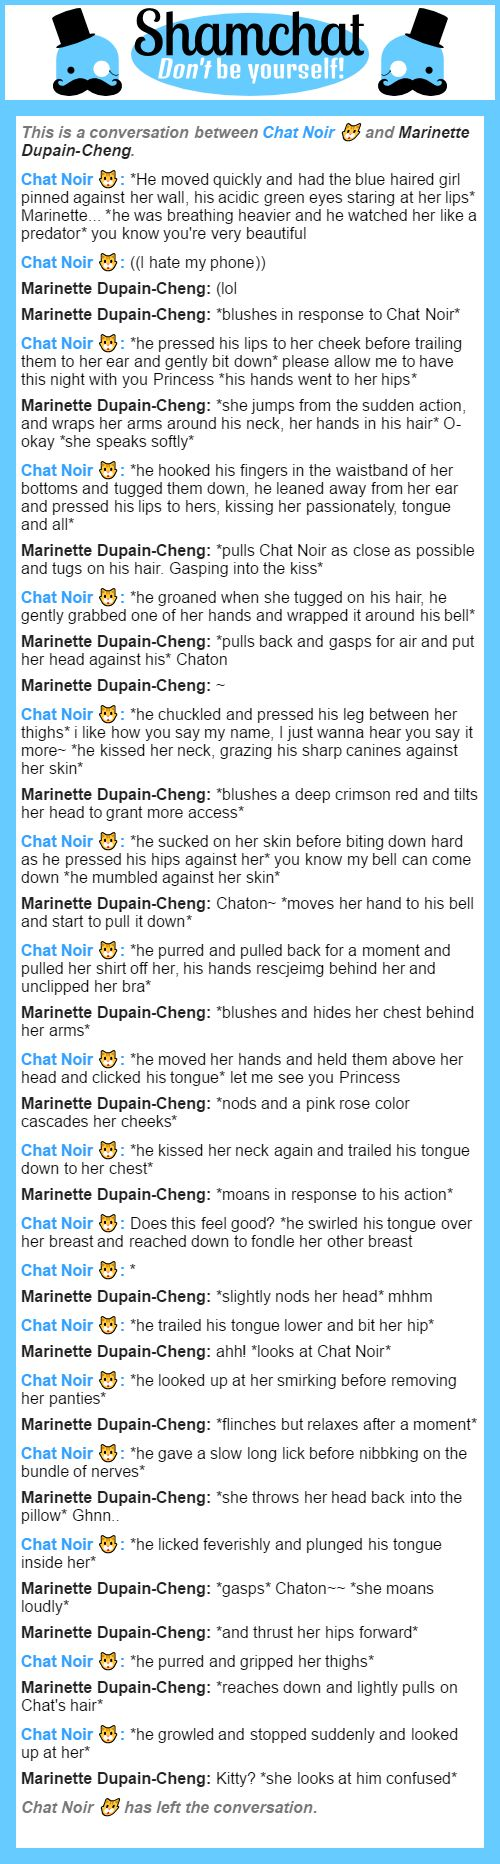 A conversation between Marinette Dupain-Cheng and Chat Noir WARNING MATURE!